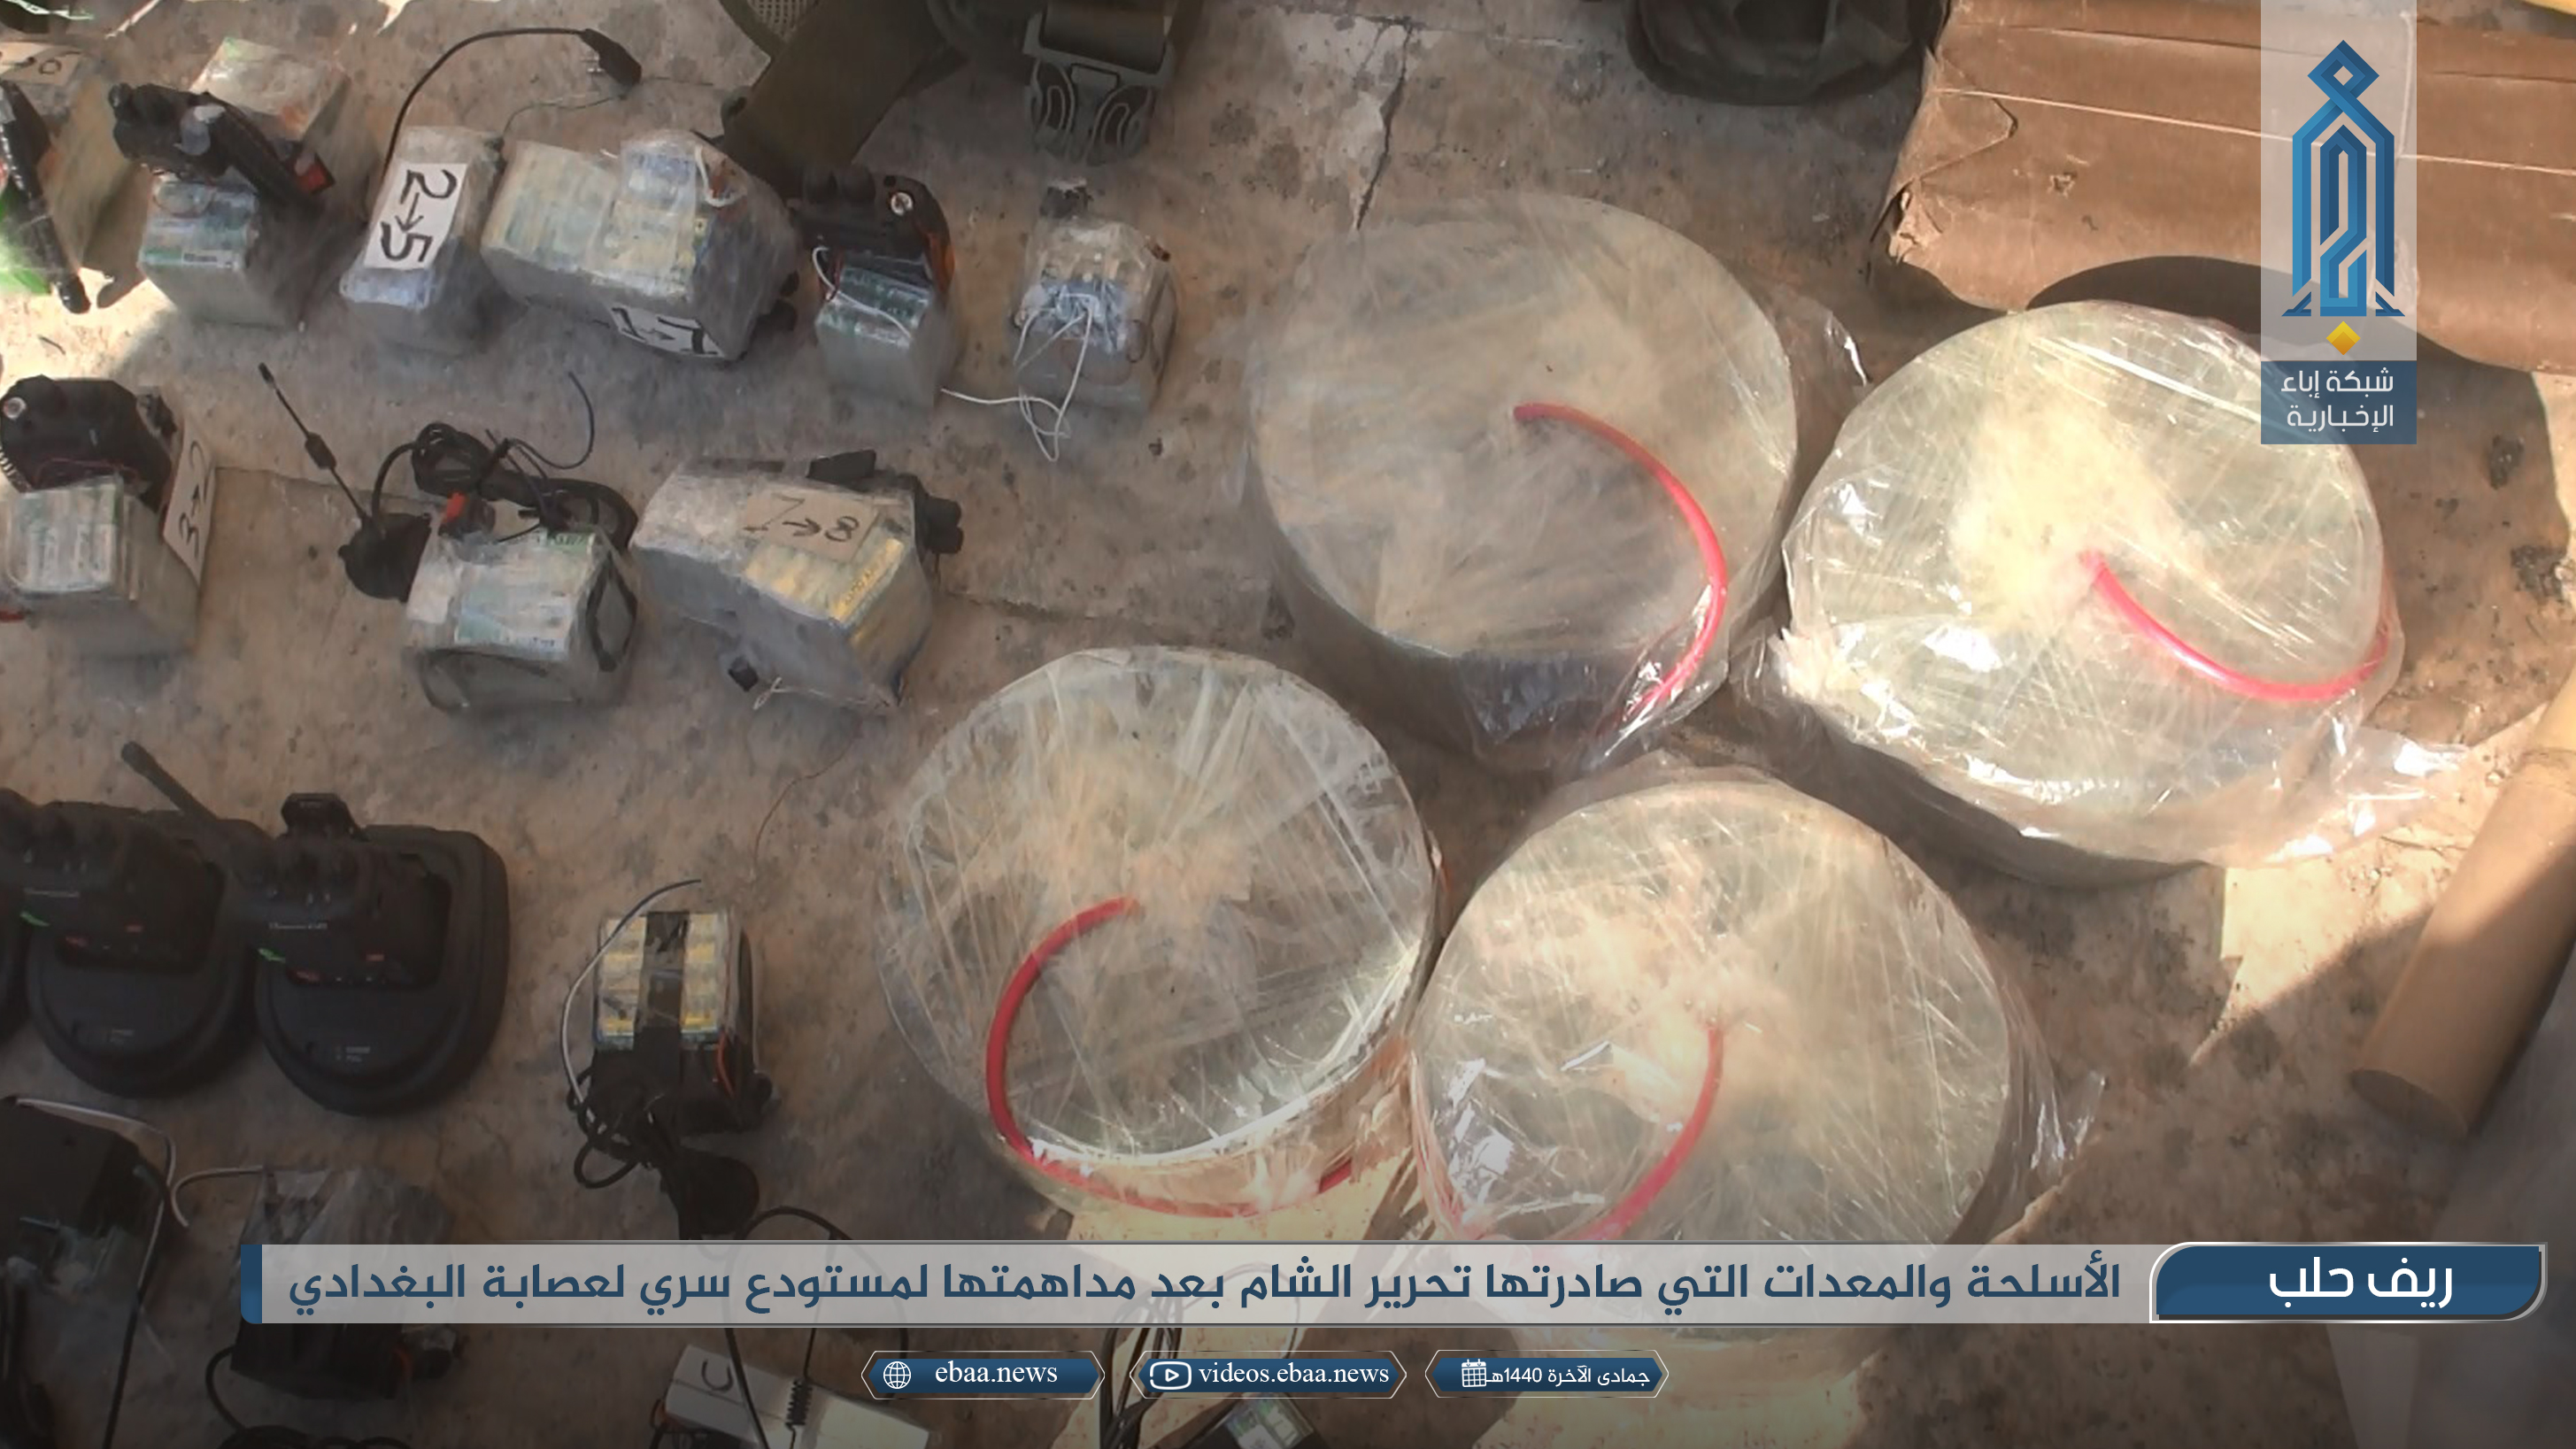 Jihadist War In Idlib Continues: HTS Captures Senior ISIS Commander And Uncovers Ammo Depot (Photos)